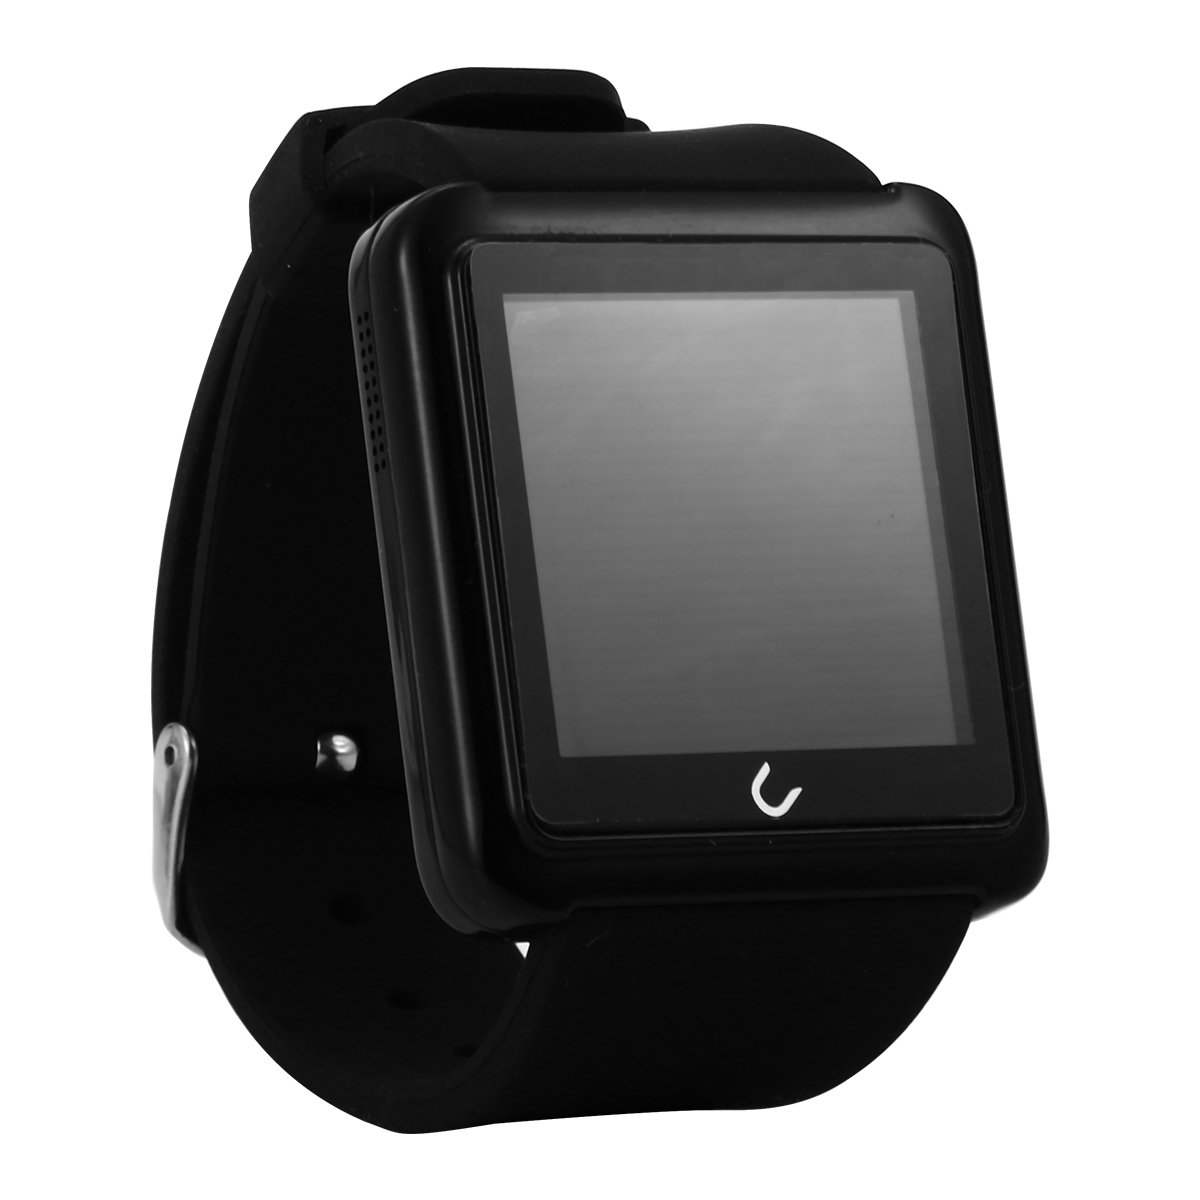 Bluetooth Smart Watch Waterproof Upgrated Version U10L Sport WristWatch for Apple/Samsung Android IOS Phone AC296/7<br><br>Aliexpress